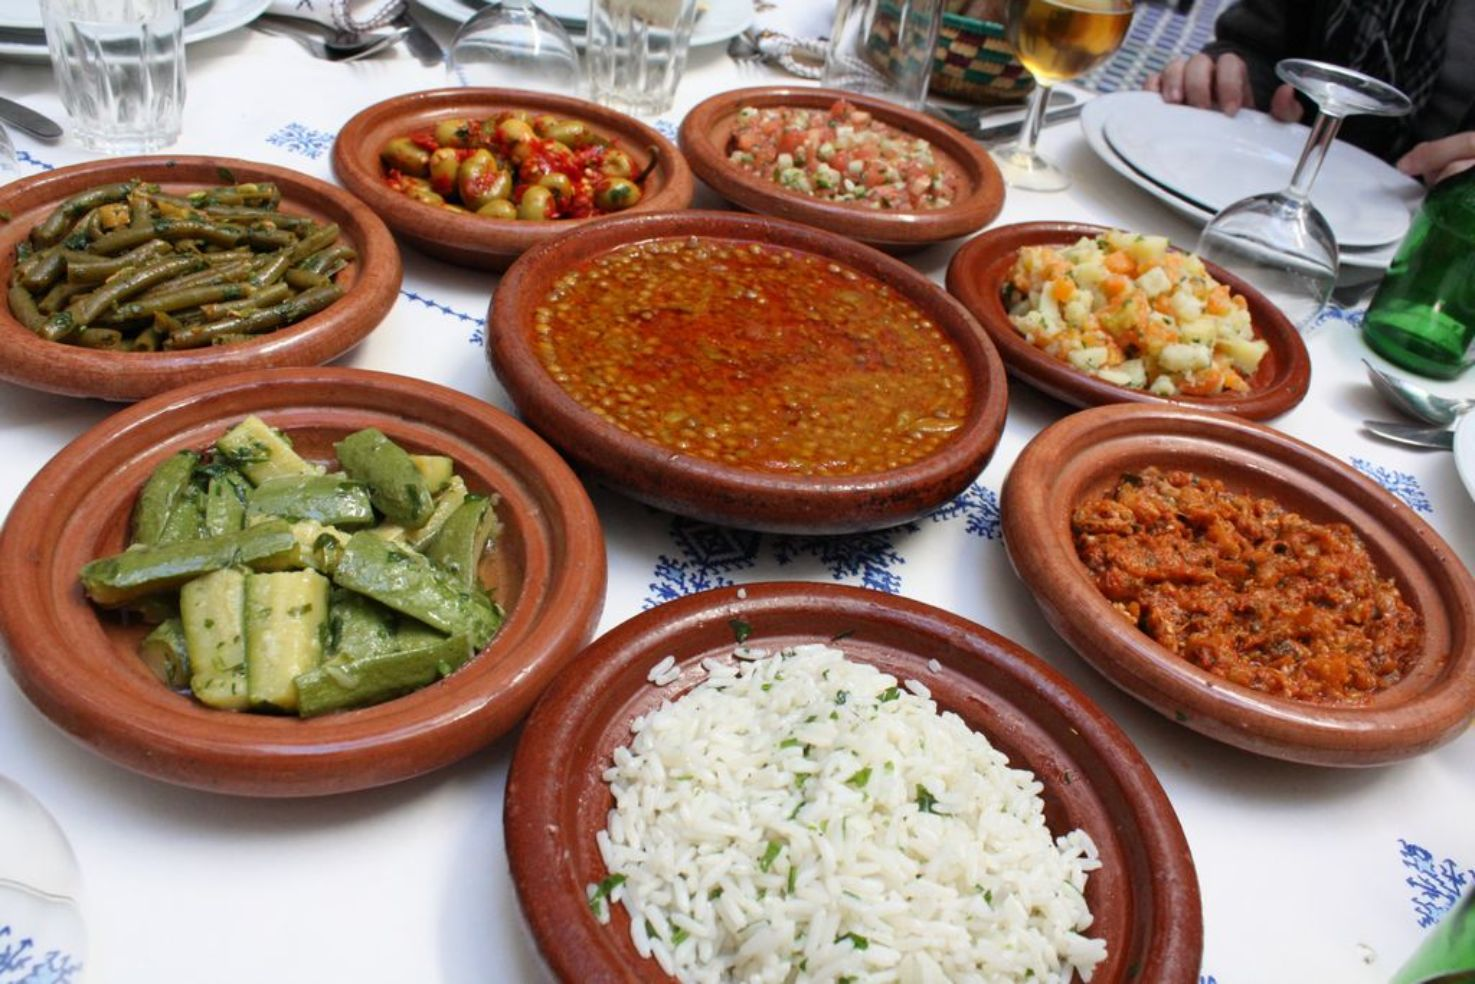 Traditional tagine dishes in Marrakech